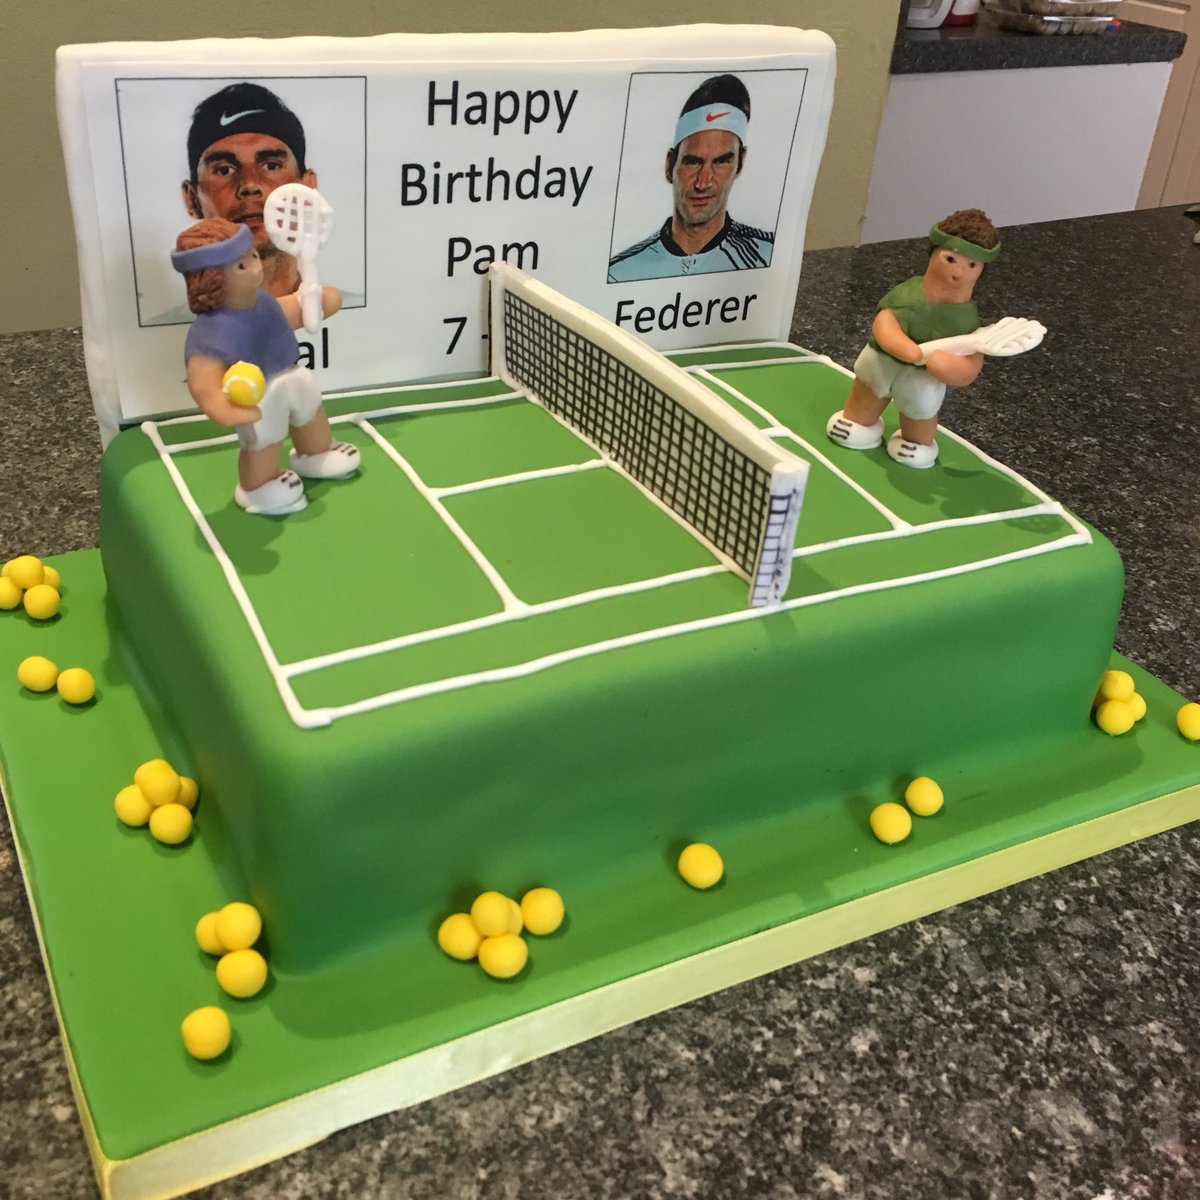 Limelight Cakes On Twitter Coffee And Walnut Tennis Cake